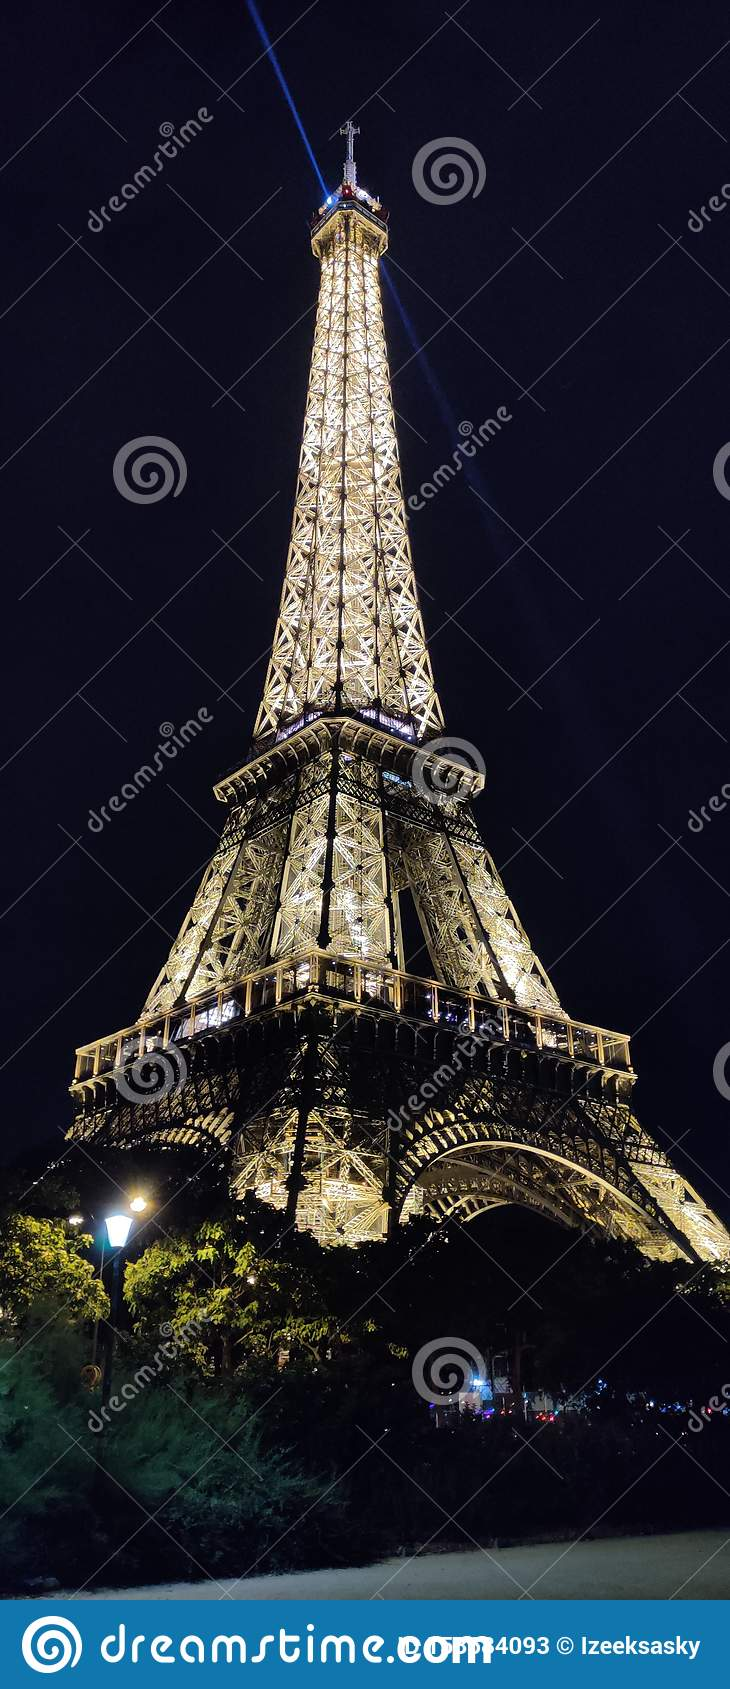 Eiffel Tower In Paris At Night Editorial Stock Photo Image Of France Tower 153684093